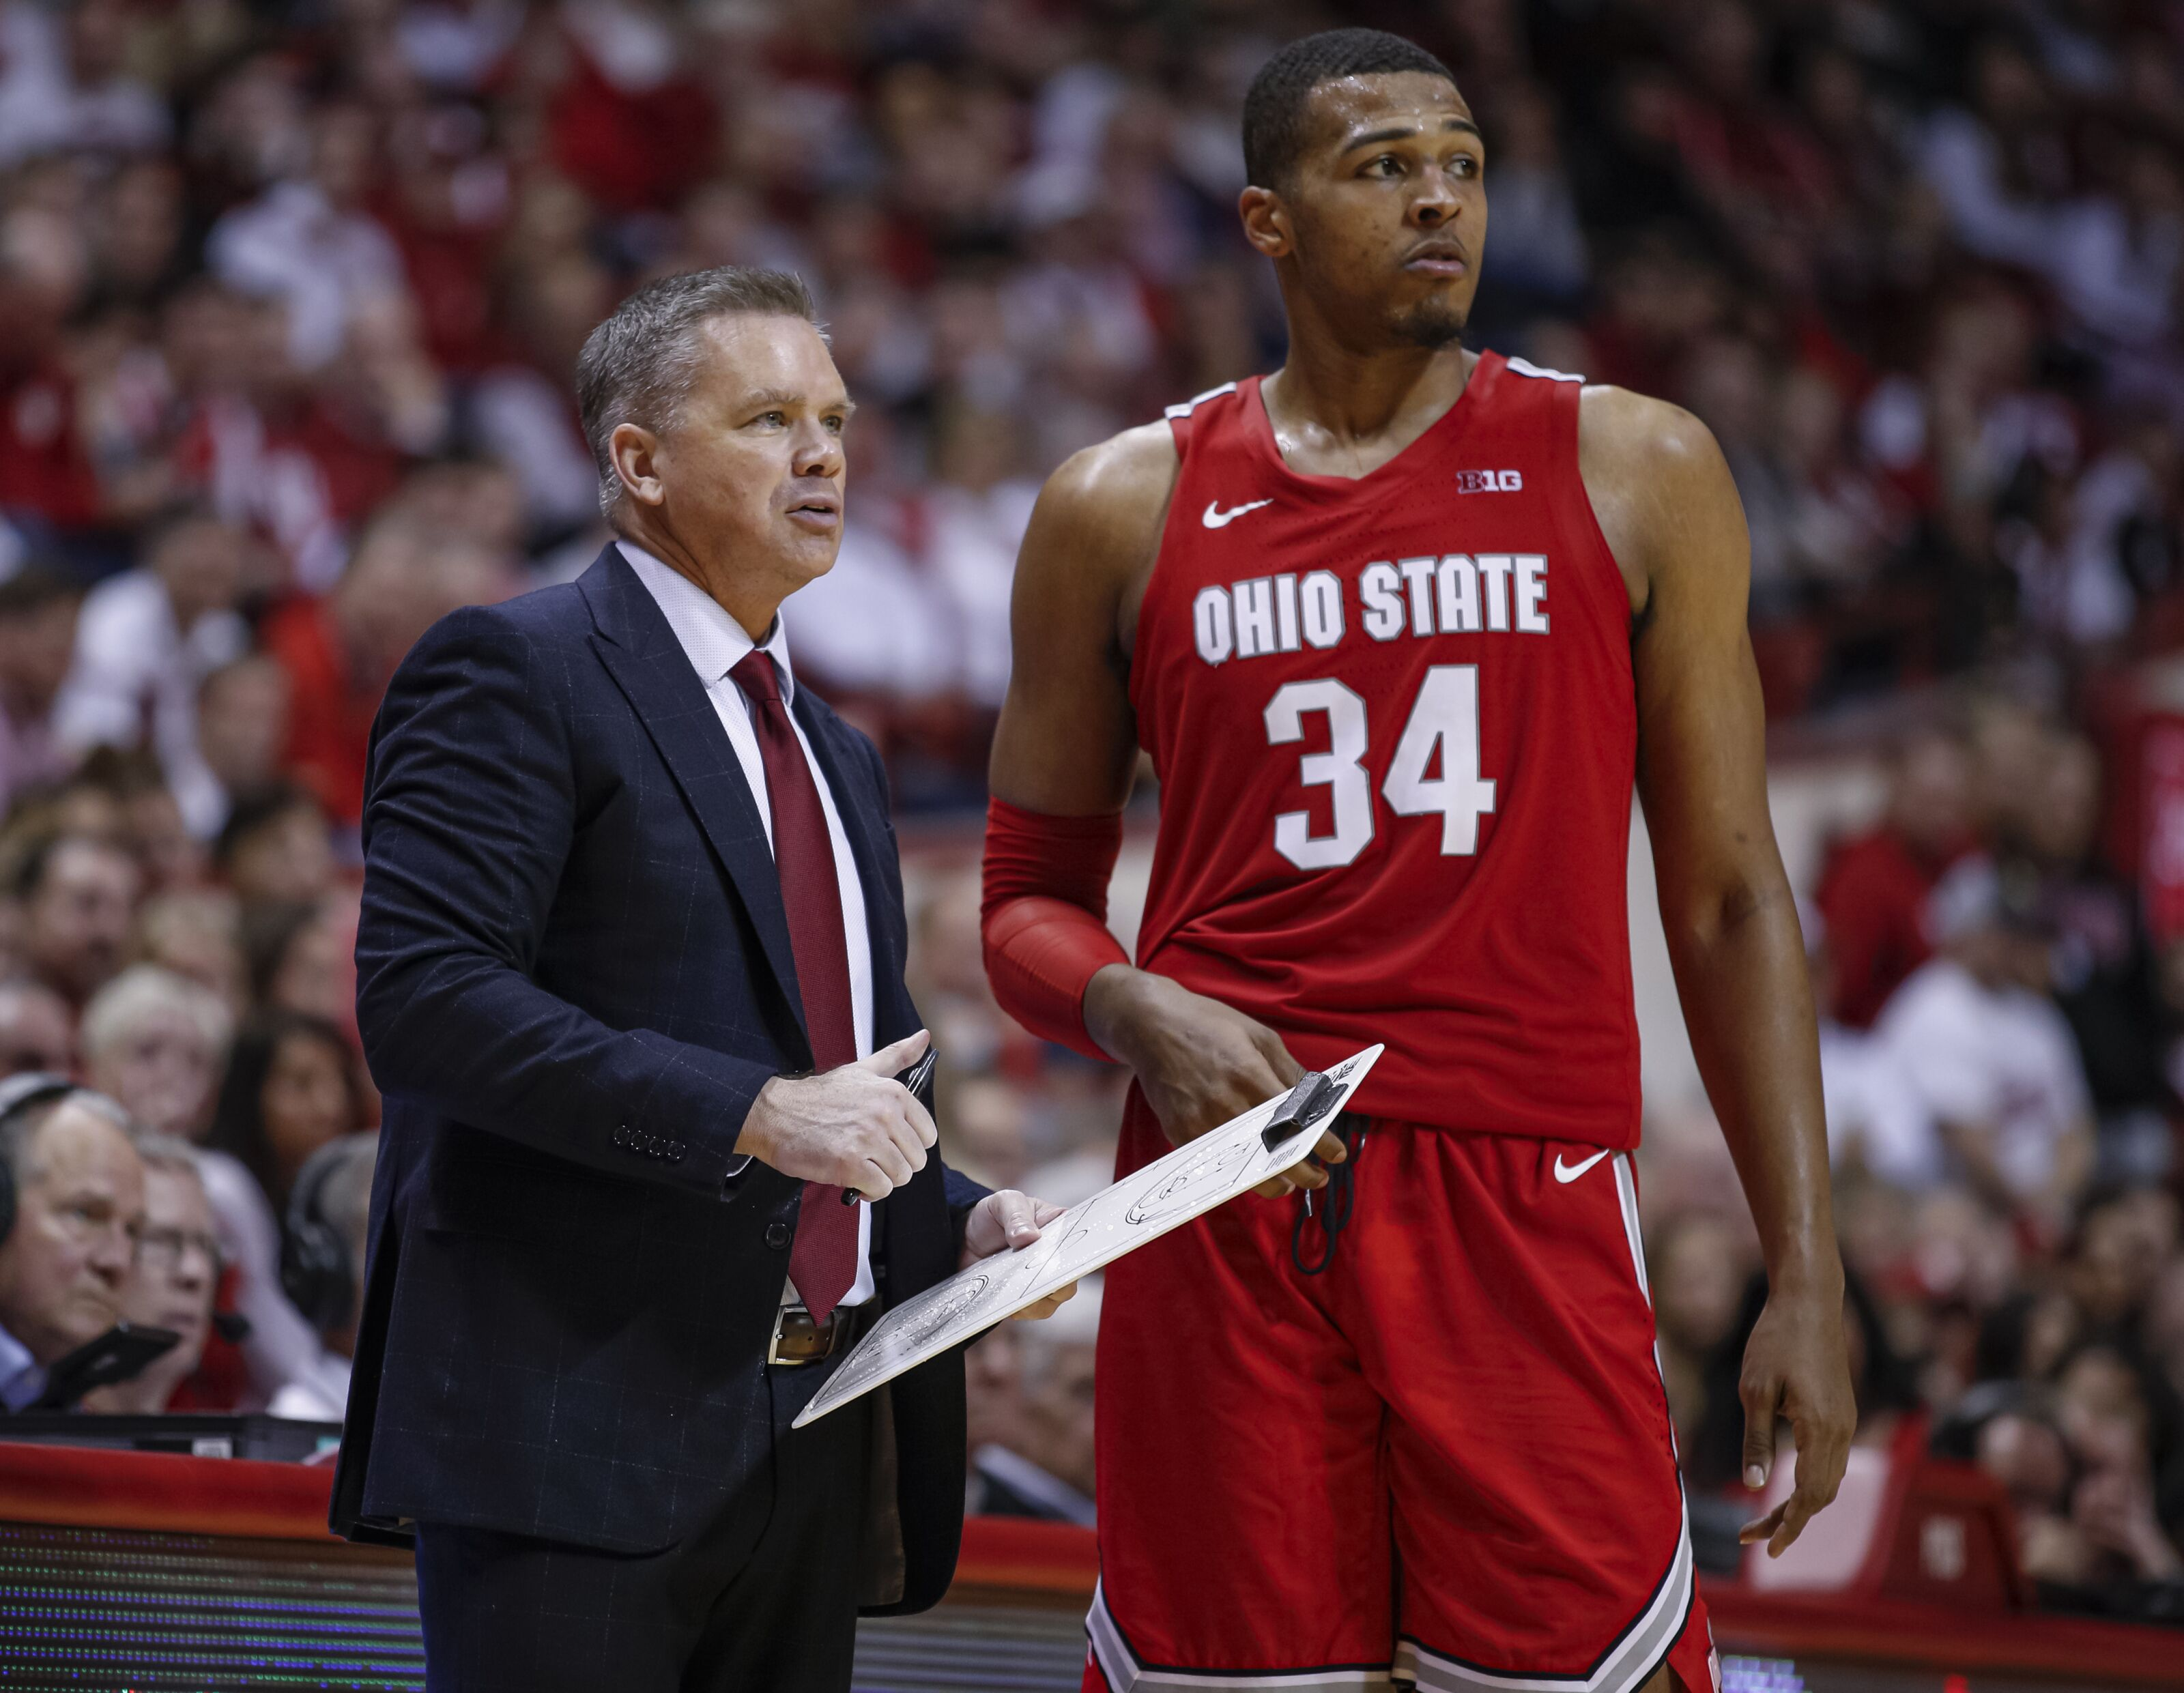 Ohio State Basketball: Buckeyes could miss out on tournament